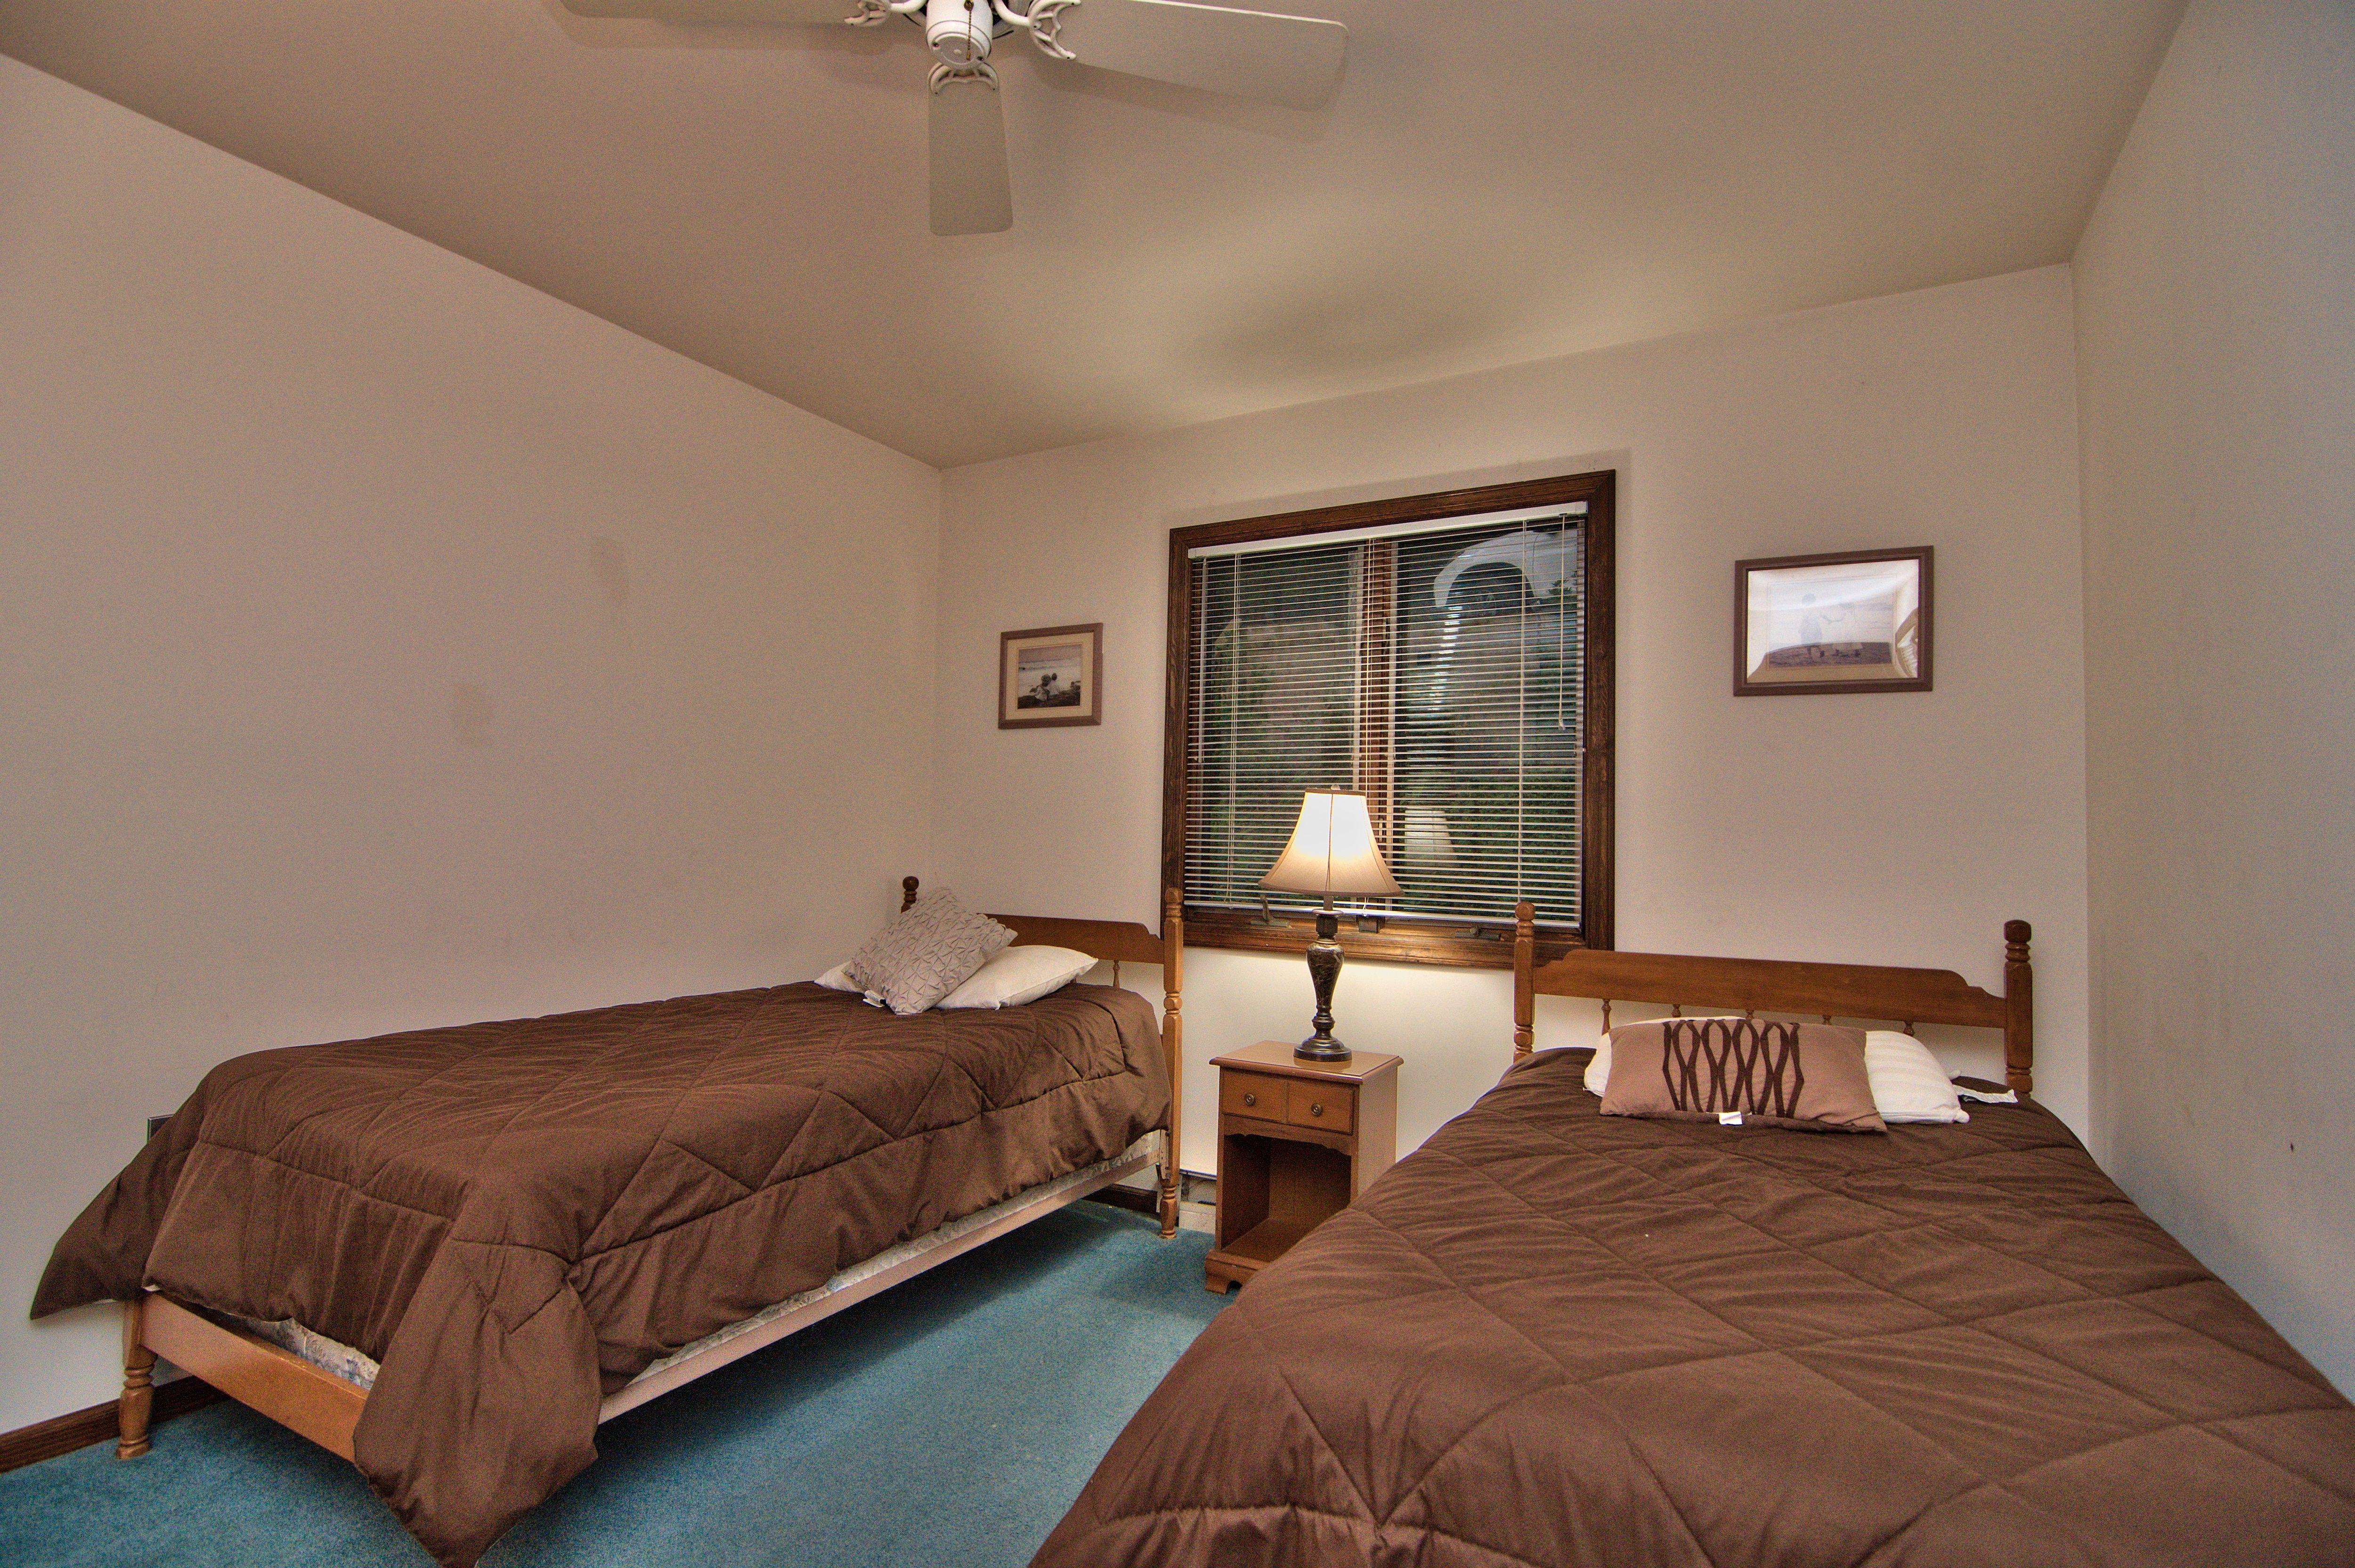 Another relaxing bedroom in this lakefront house for rent